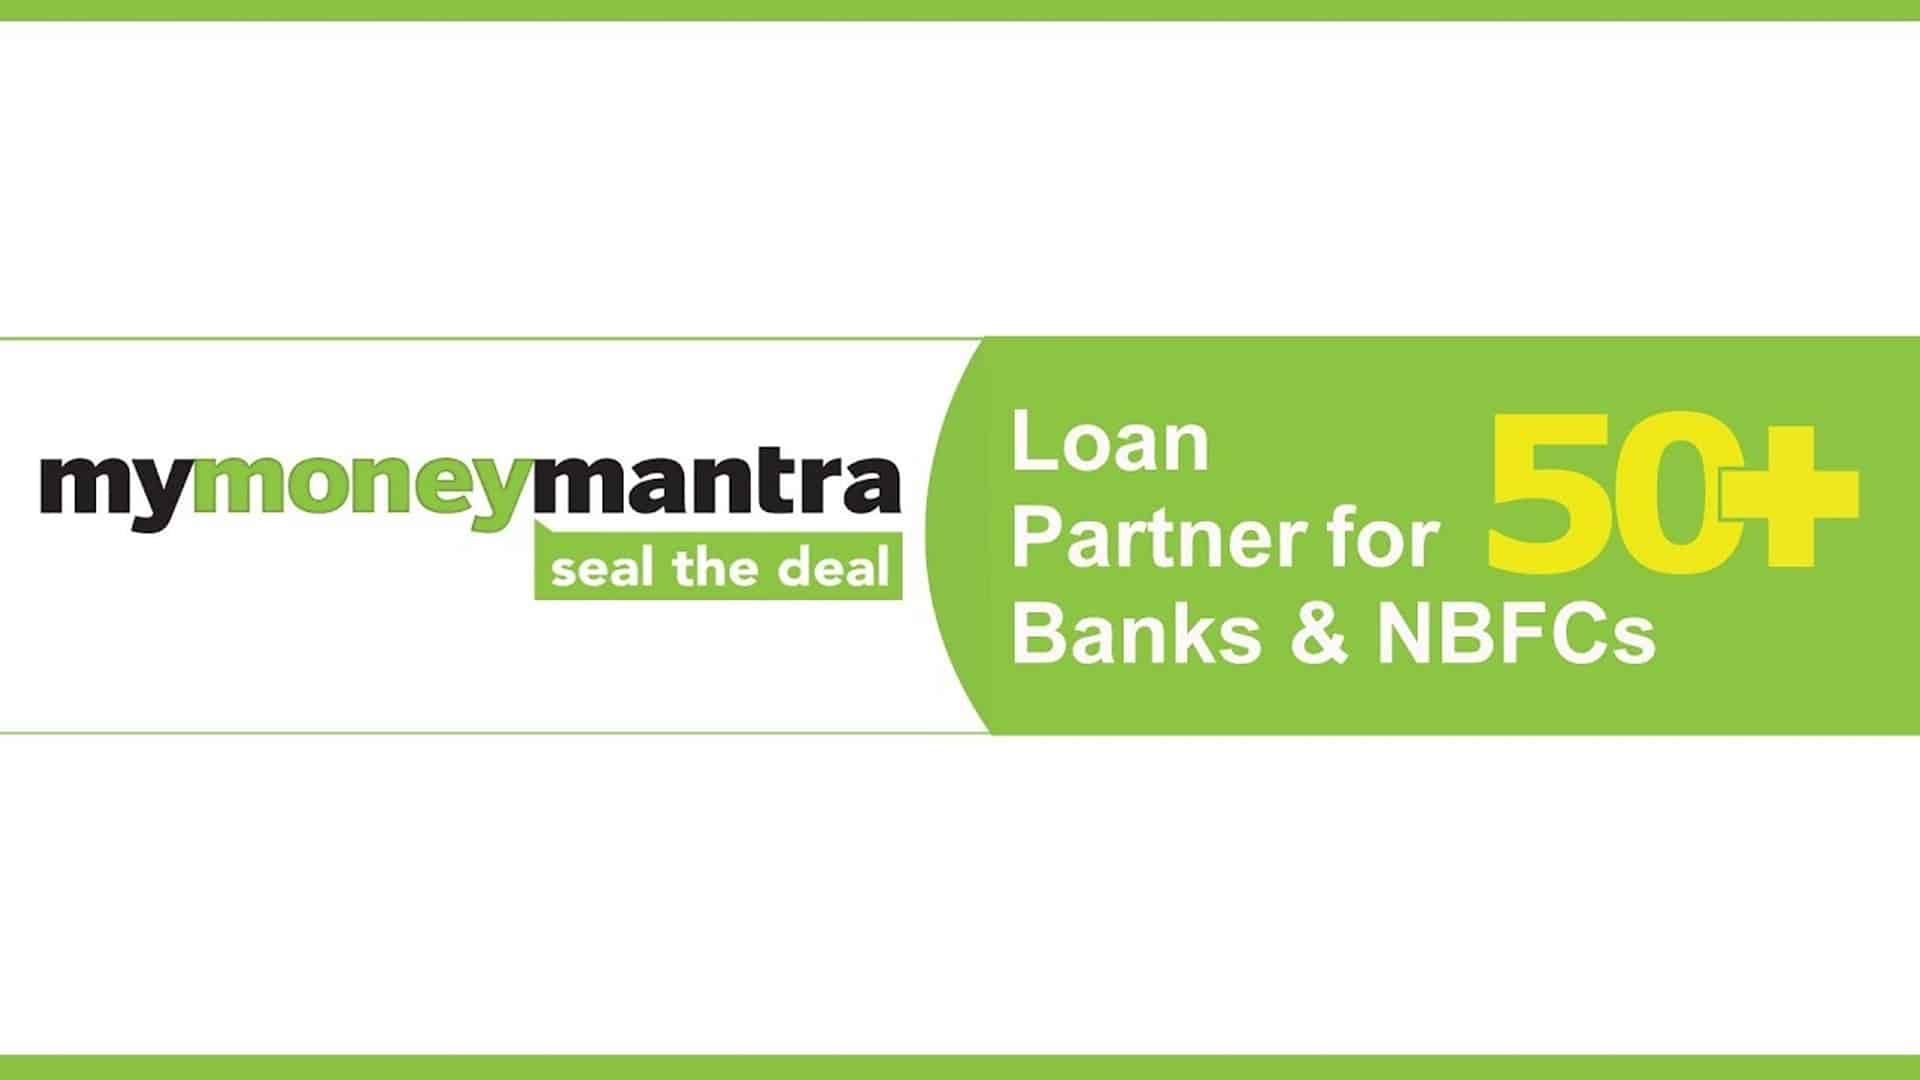 MyMoneyMantra Phy-Gital End-to-End Fulfillment Model Recommended for FinTech Efficiency and Financial Inclusion